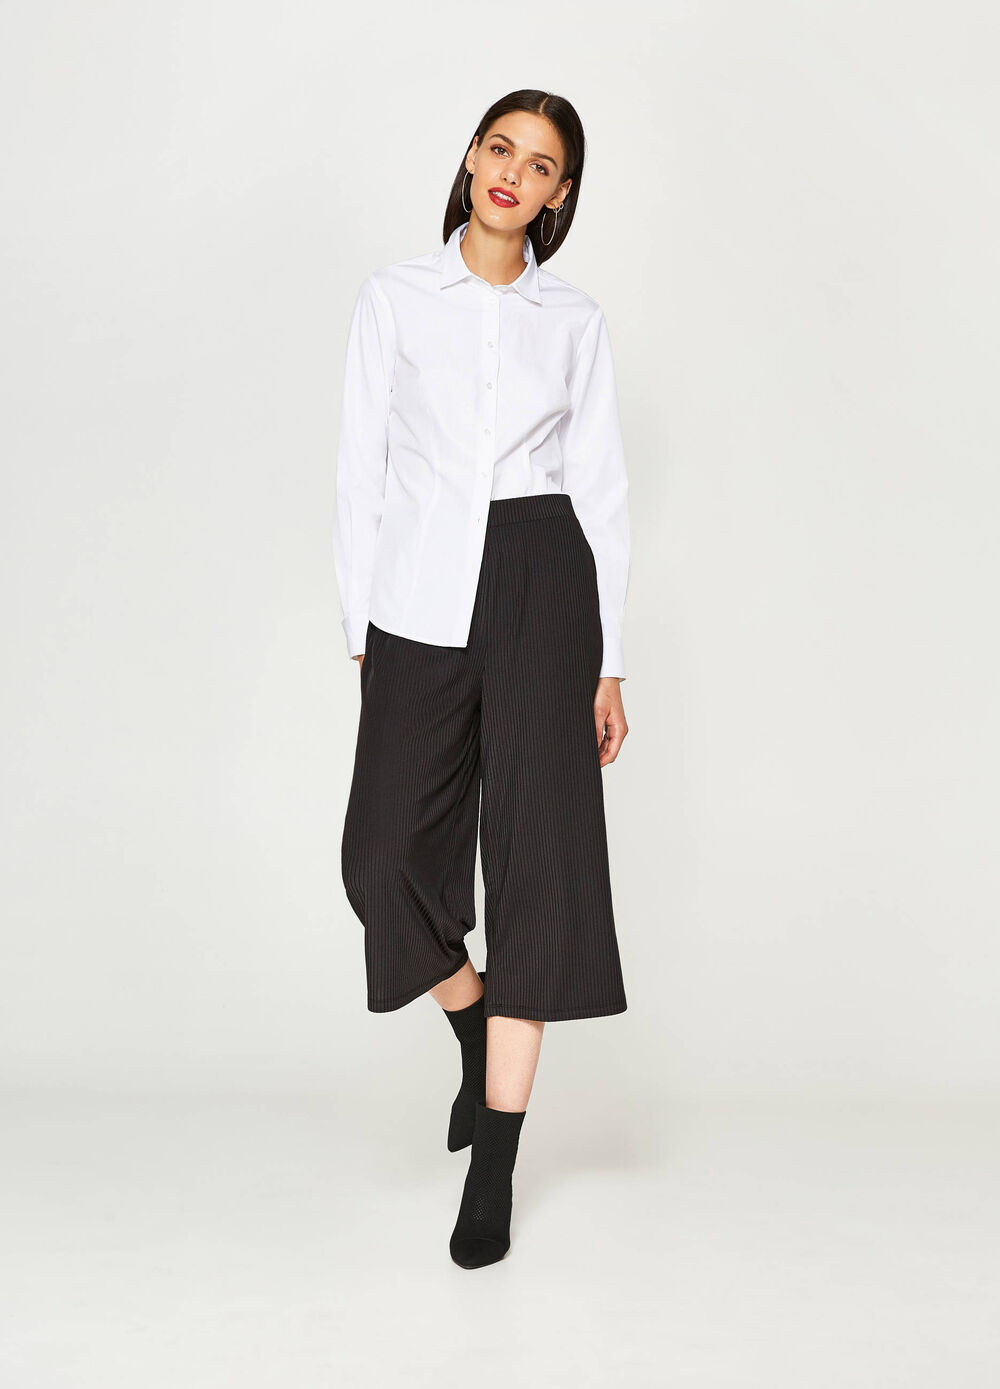 Gaucho model striped trousers